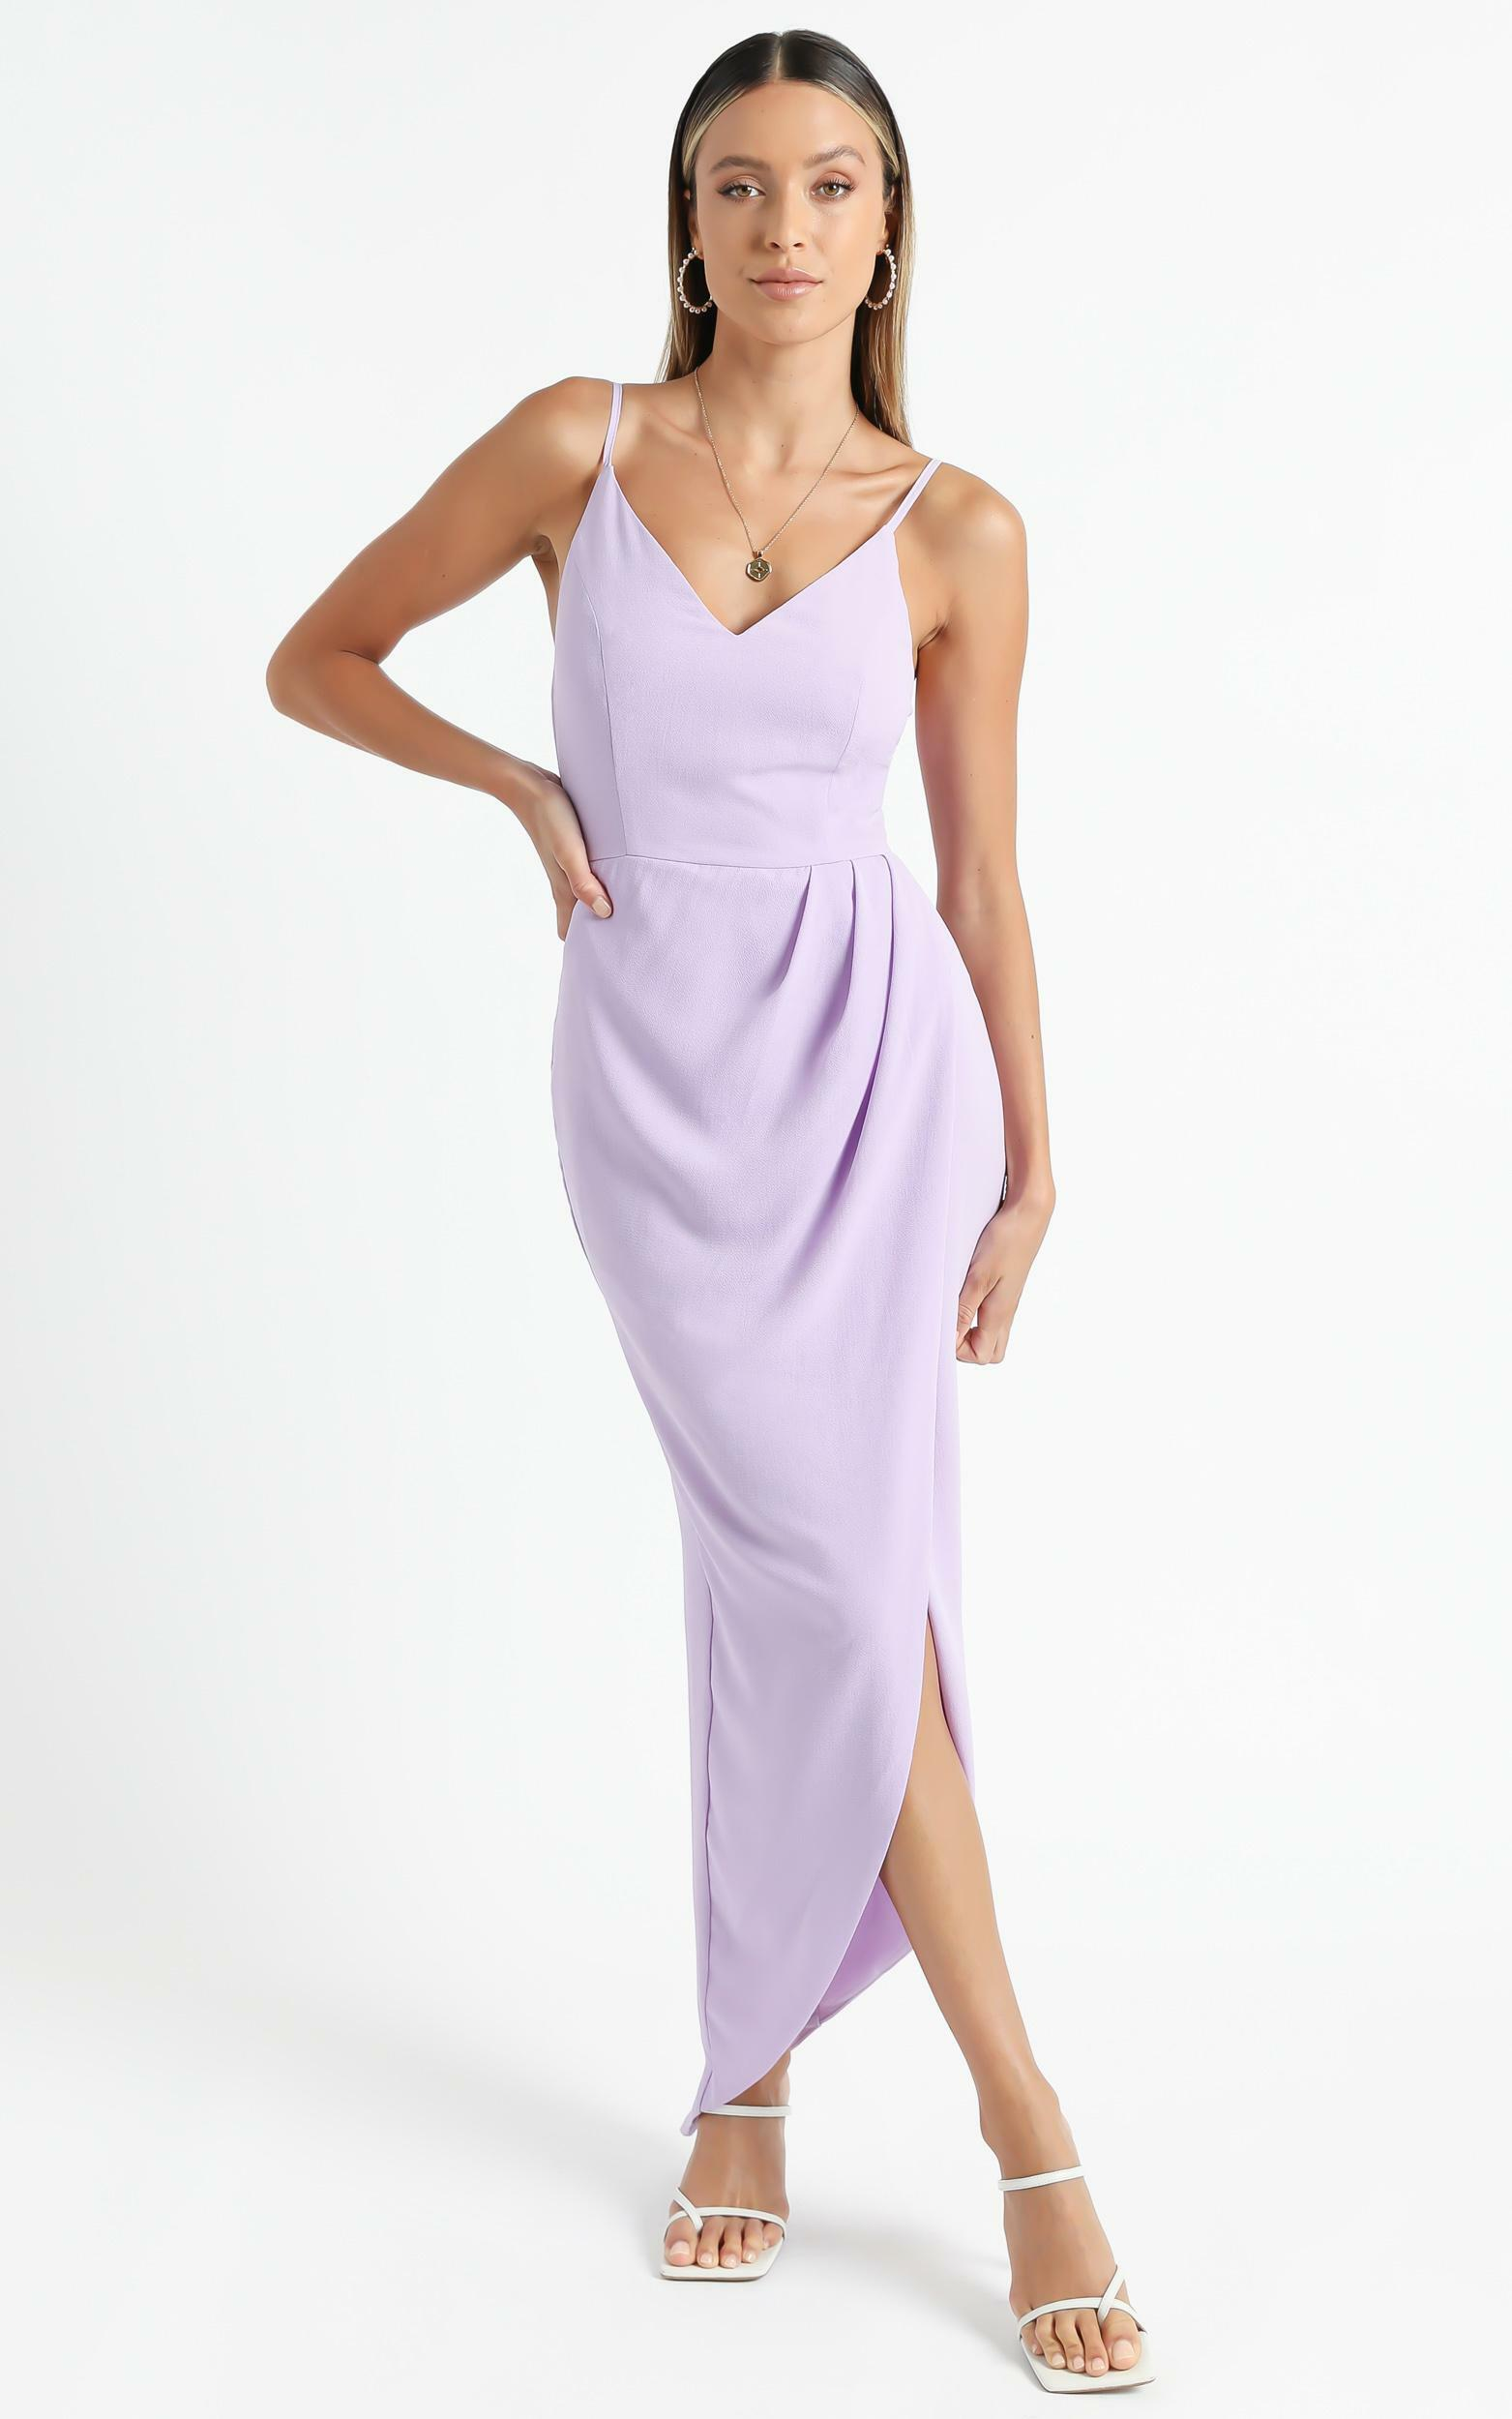 Lucky Day Drape Maxi Dress in Lilac - 06, PRP10, hi-res image number null